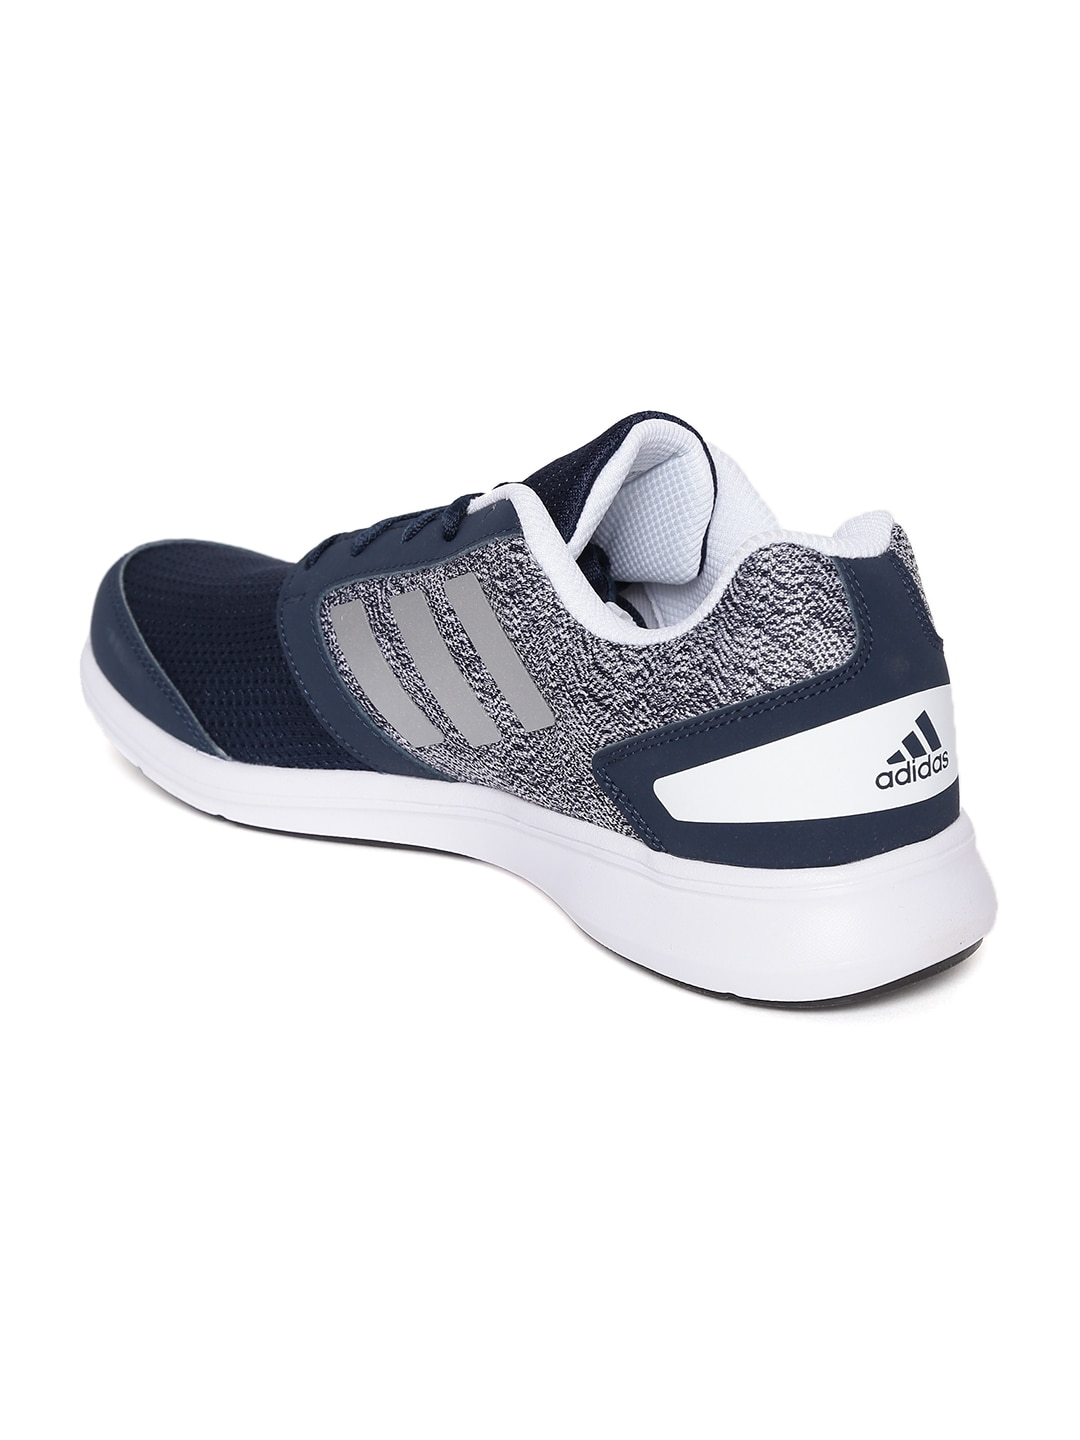 adidas shoes for men sports pants adidas shoes 2017 sport running watches